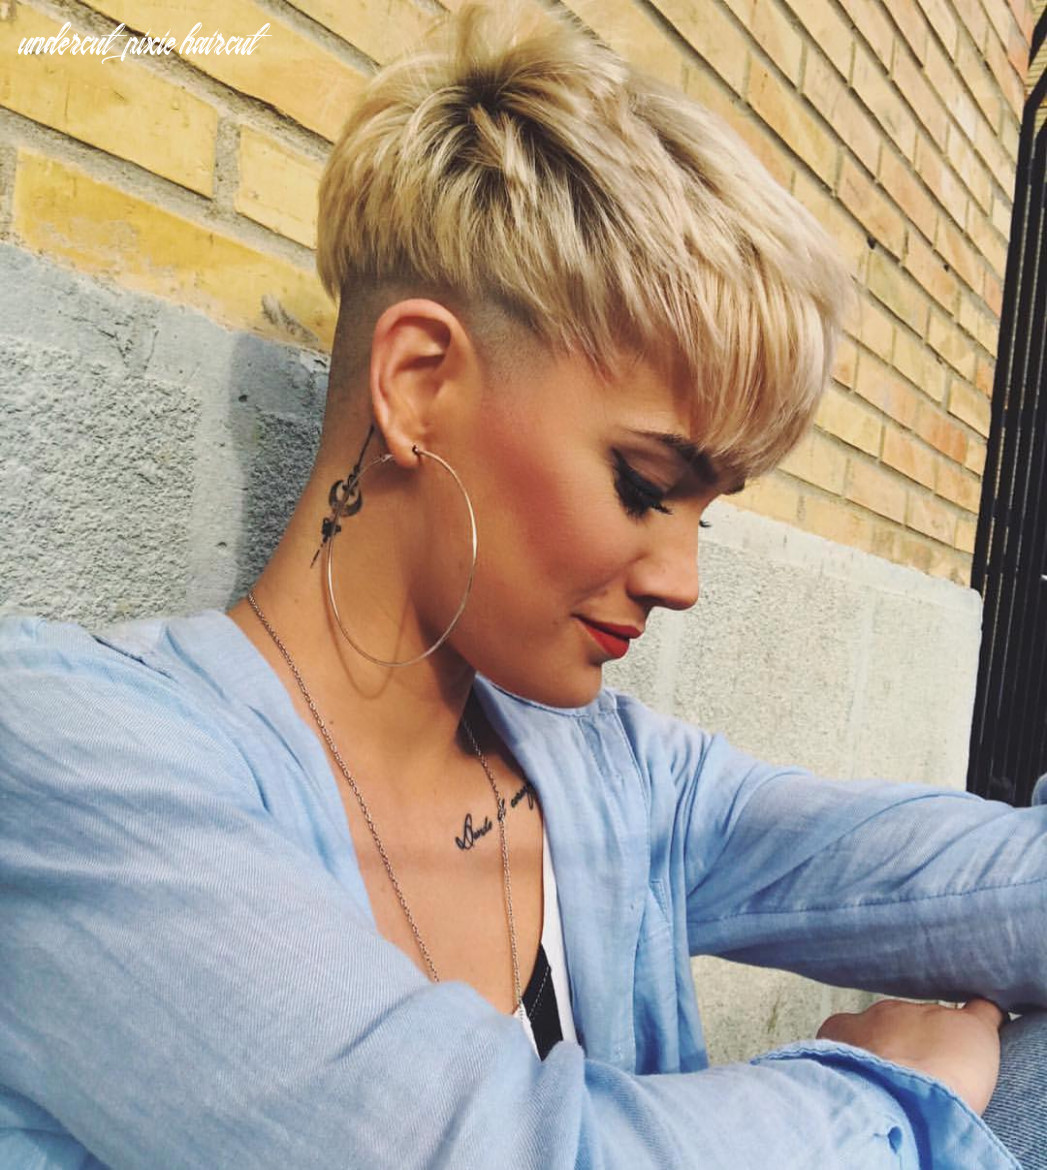 11 stylish pixie haircuts women short undercut hairstyles 11 undercut pixie haircut